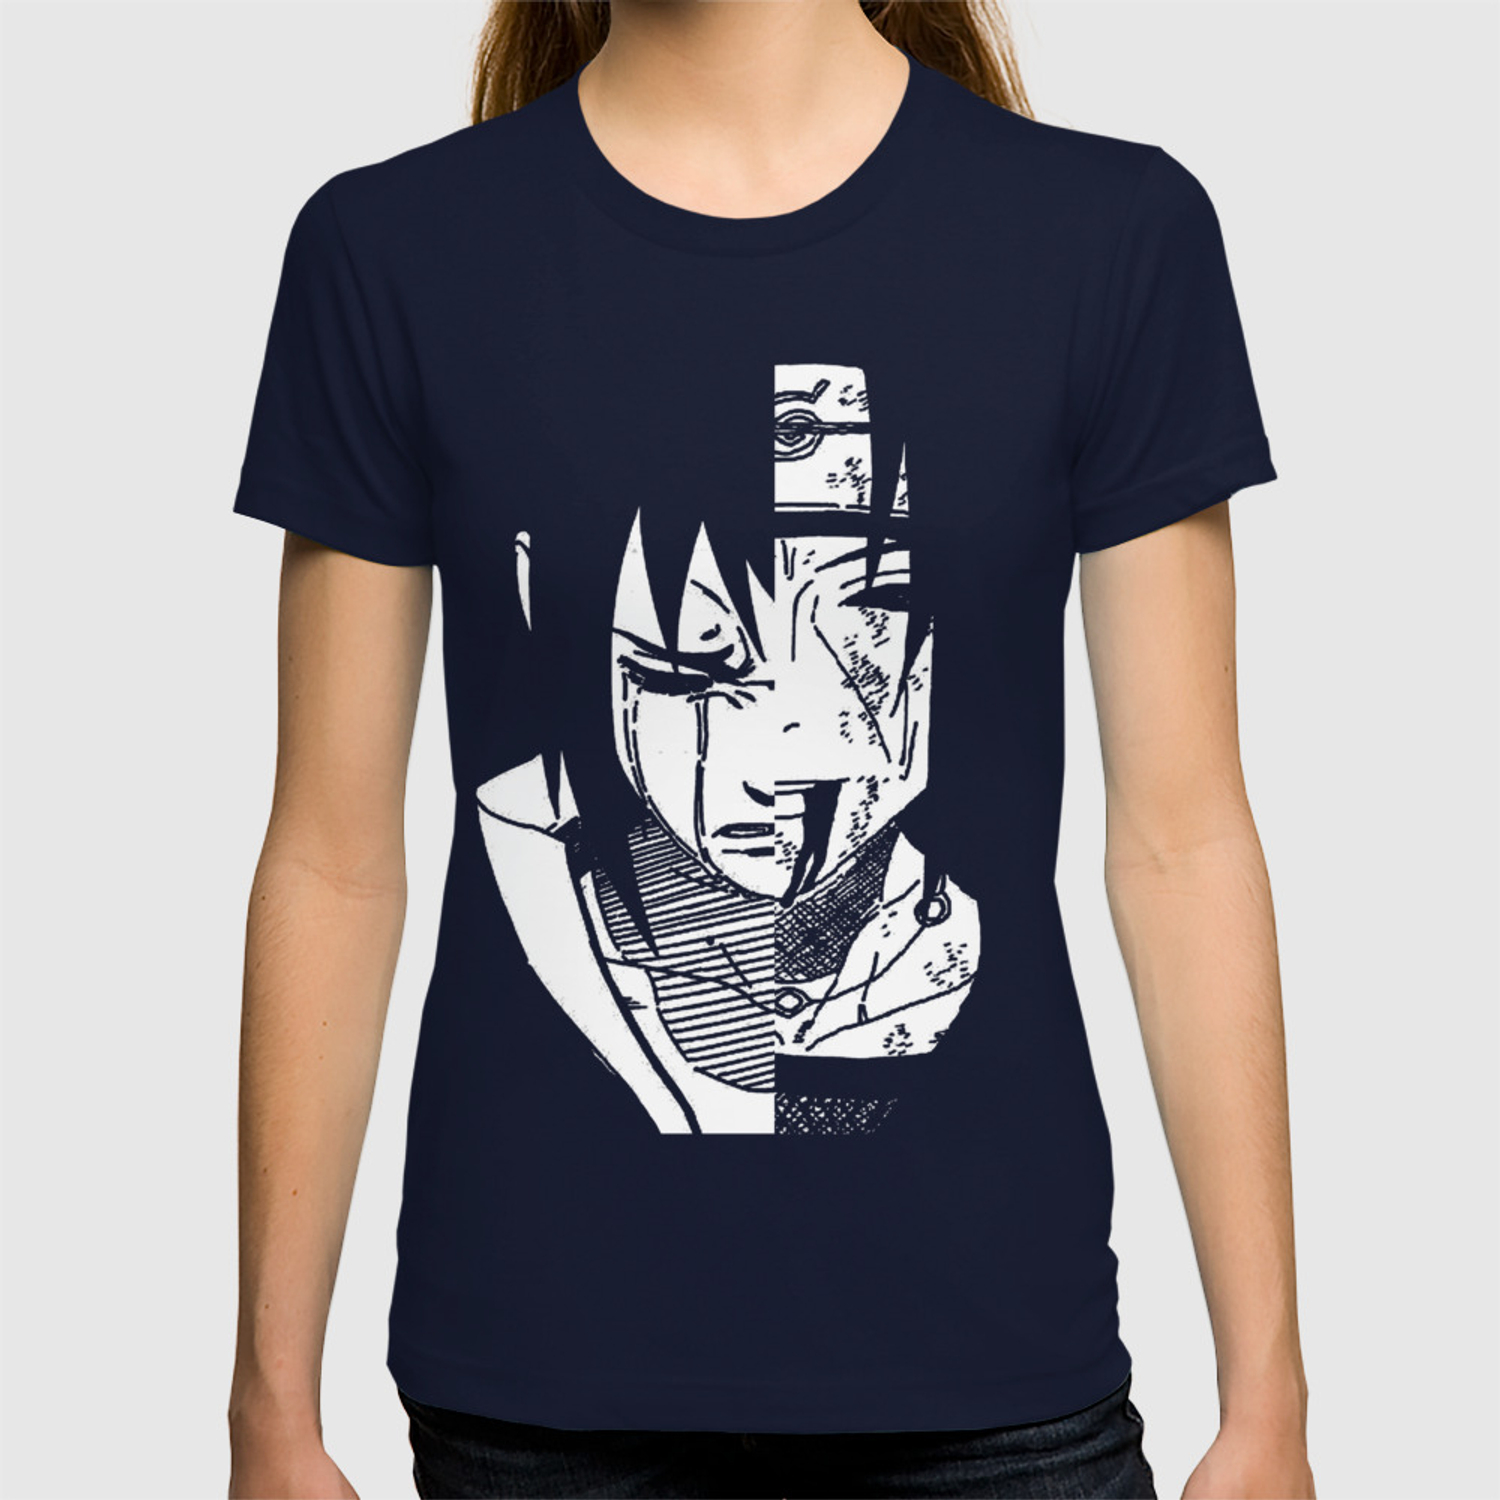 Sasuke and Itachi T-shirt